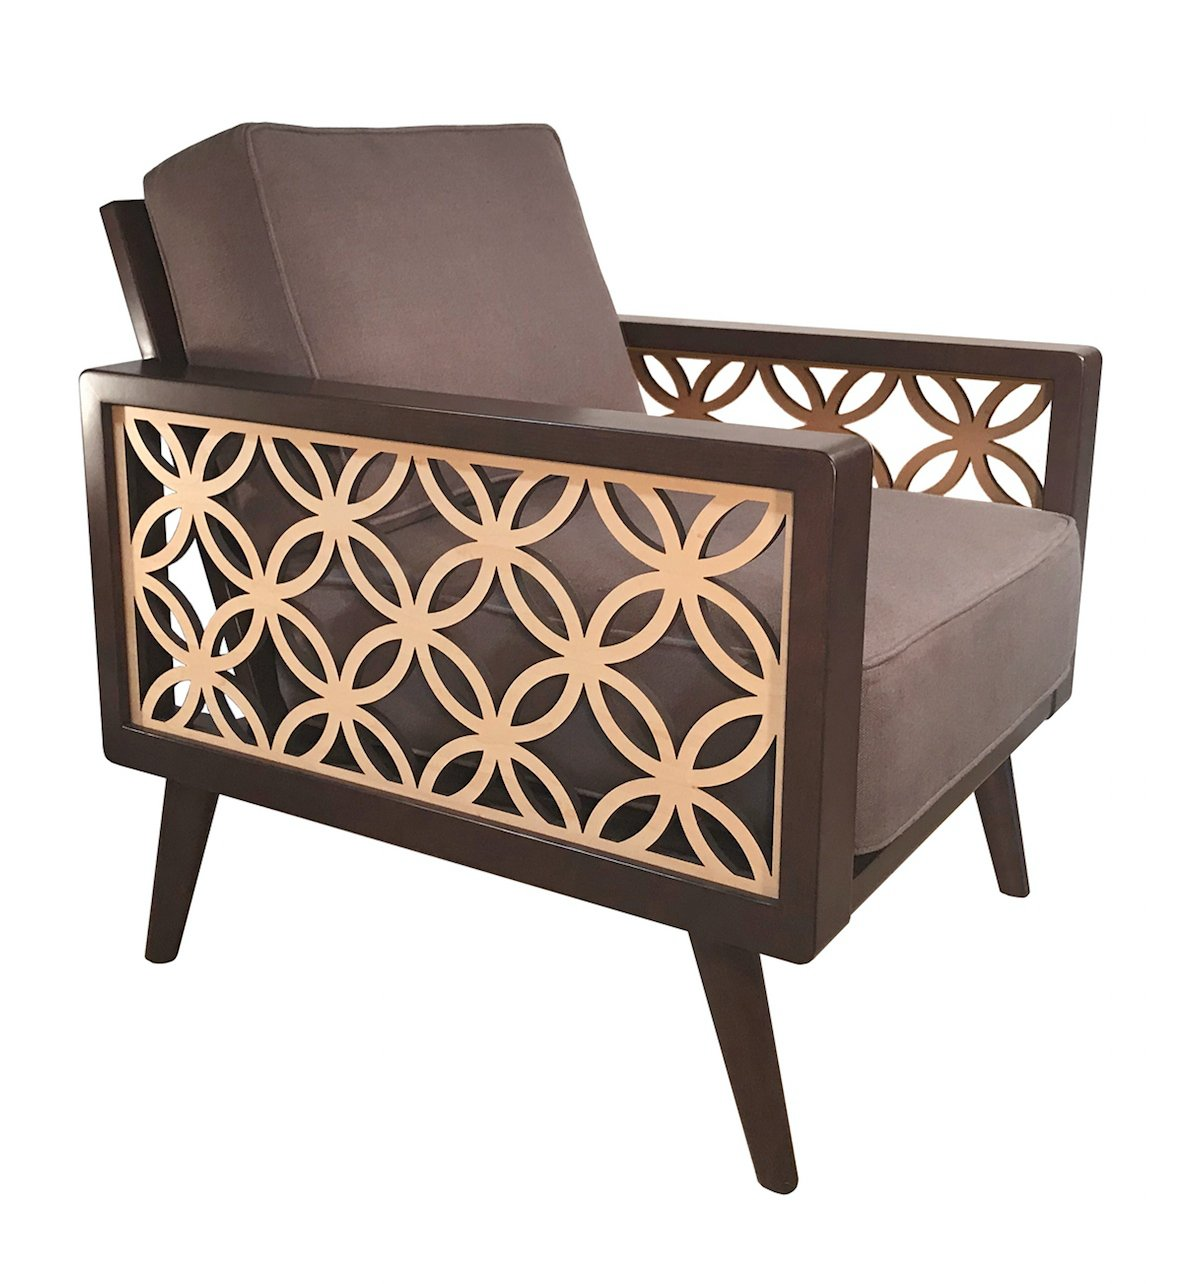 interlaced circles mid century modern lounge chair twist. Black Bedroom Furniture Sets. Home Design Ideas